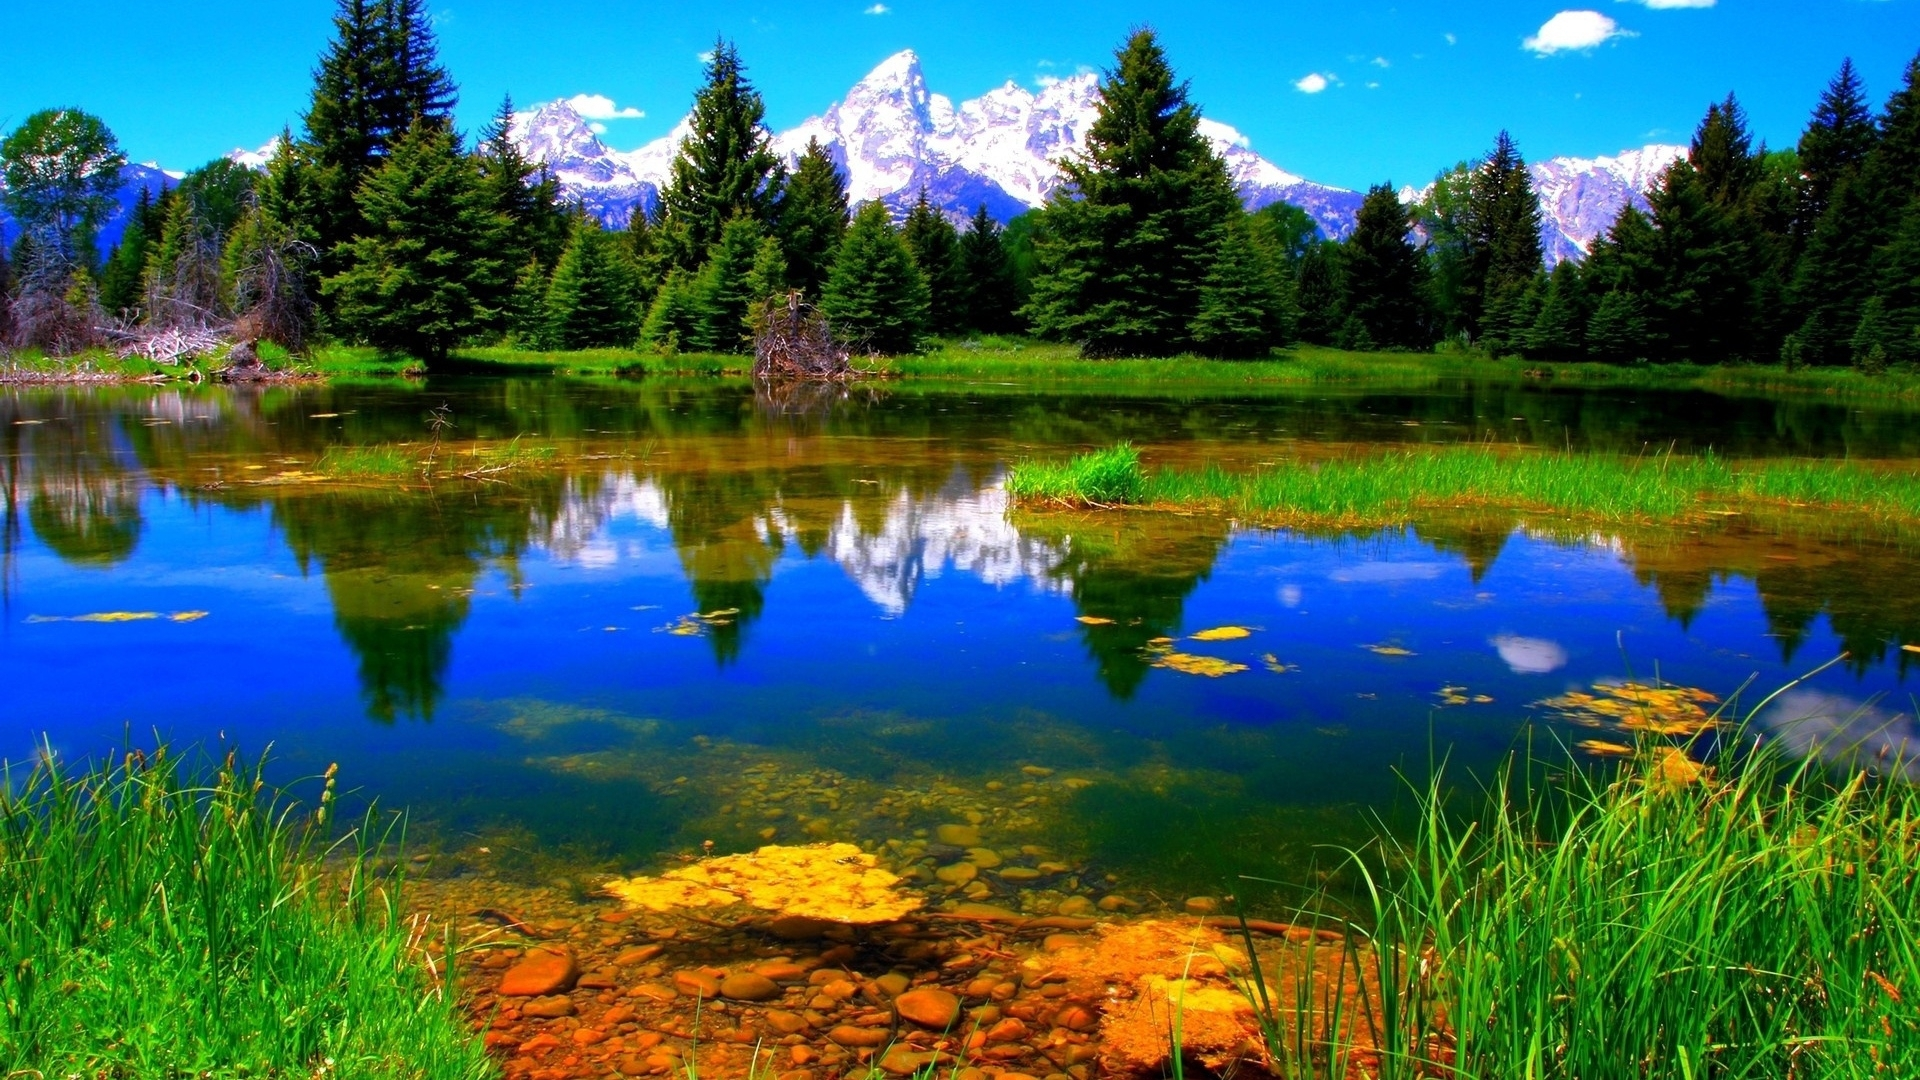 hd scenery wallpaper 1080p 1080p wallpaper top desktop - wallpaper